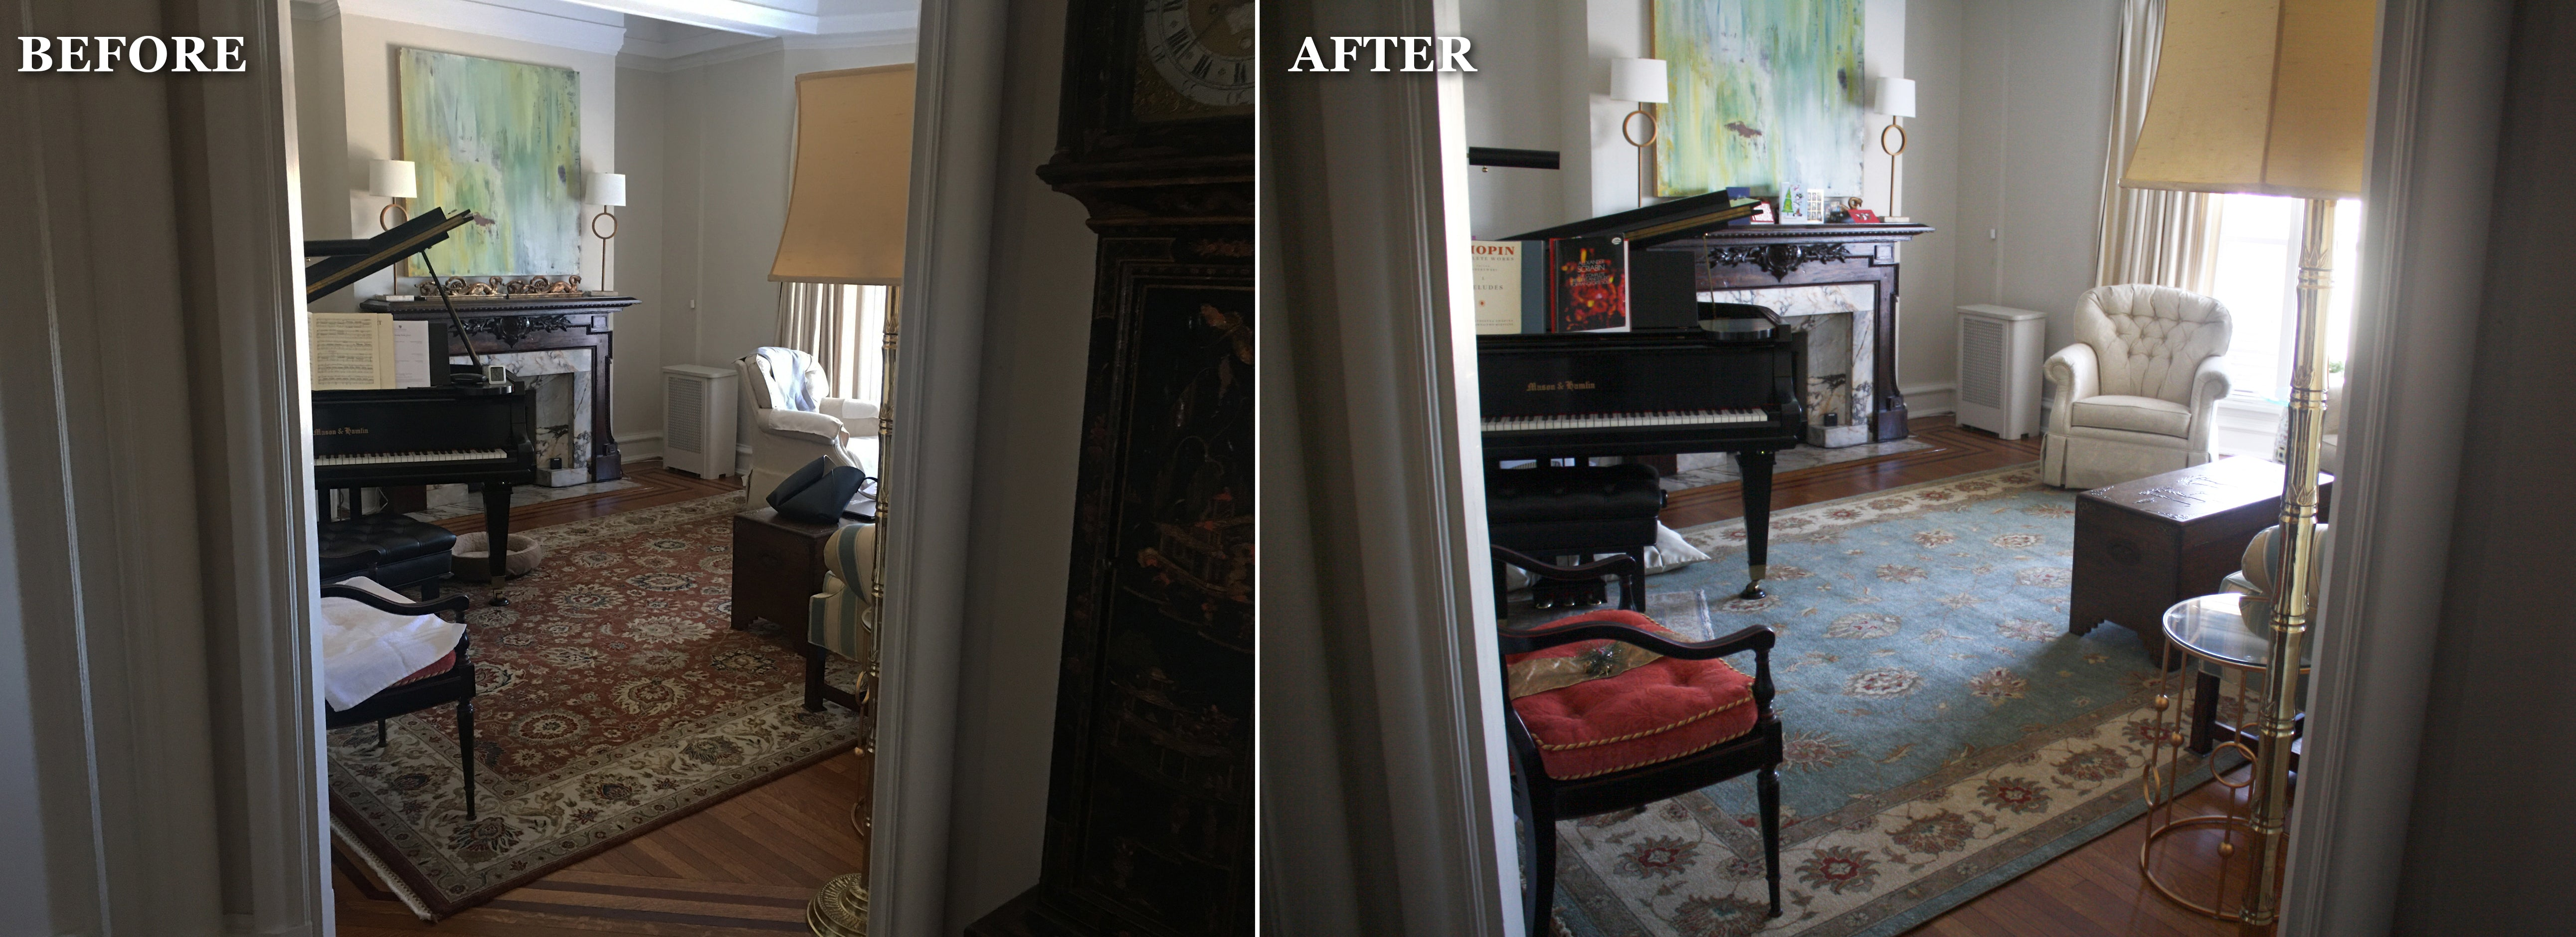 Interior design before and after with Persian rug